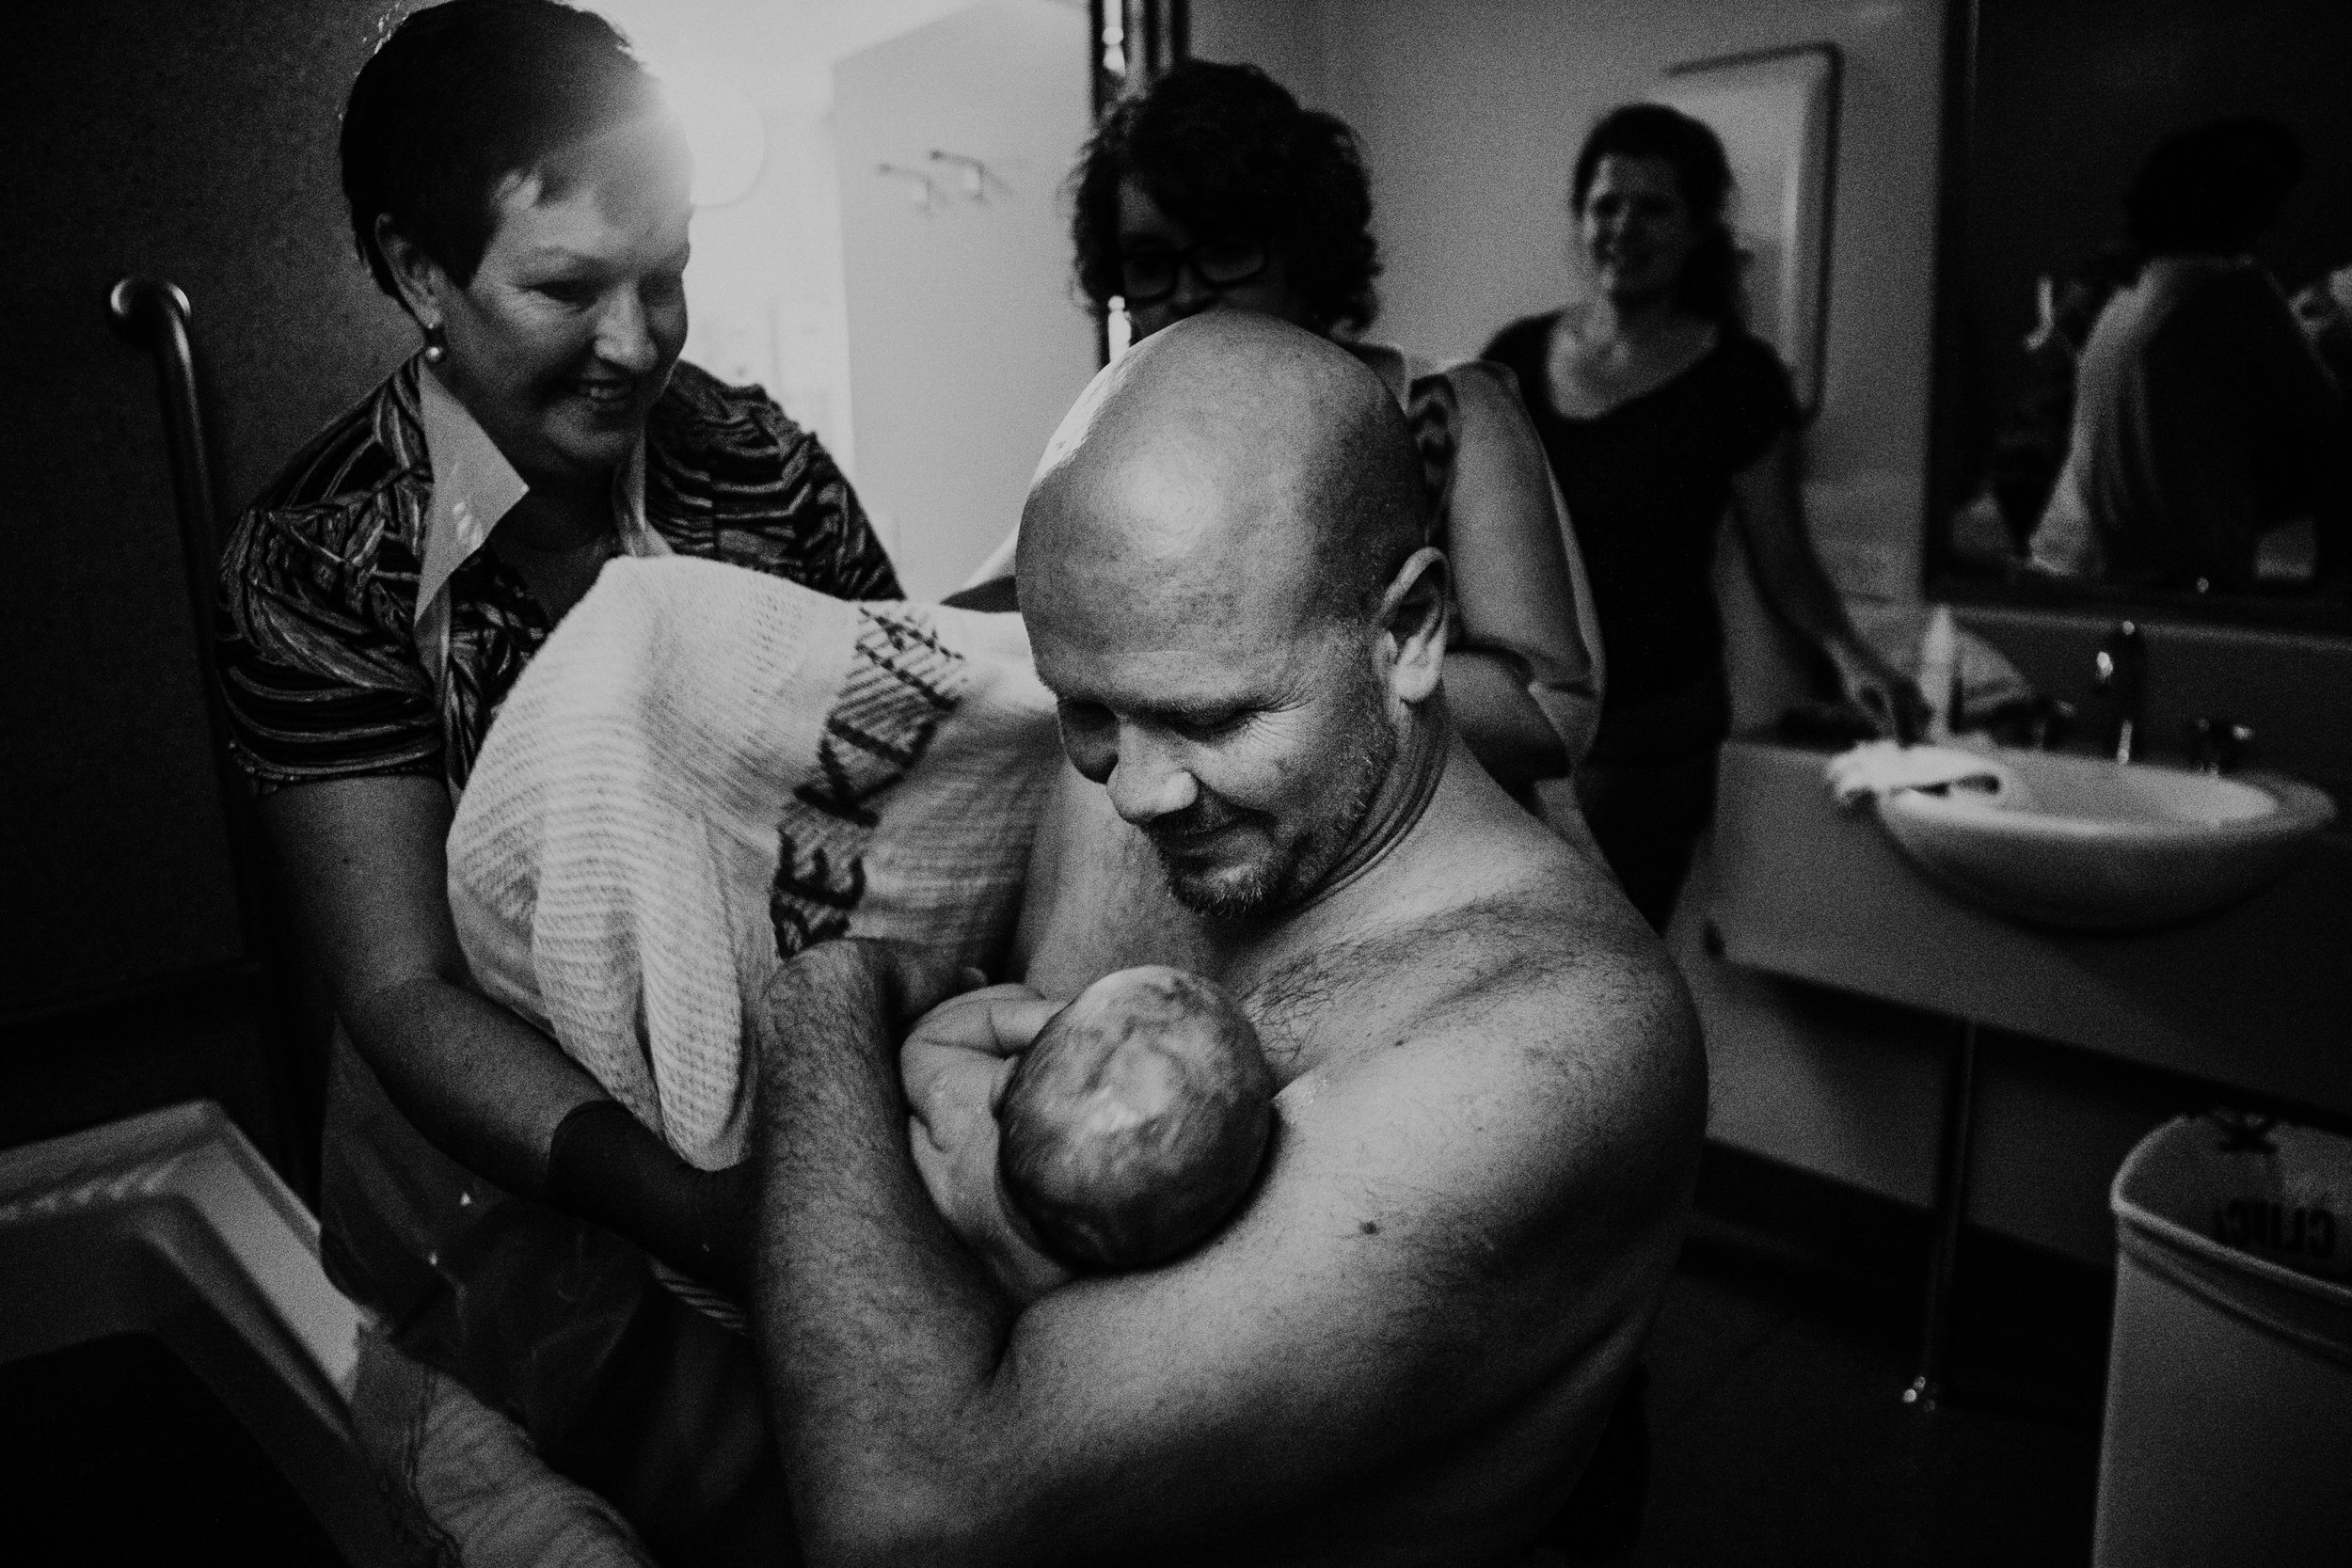 newborn-Skin-to-skin-with-father-hospital-birth-photography-midwife-passing-baby-wollongong-mgp-midwifery-group-practice